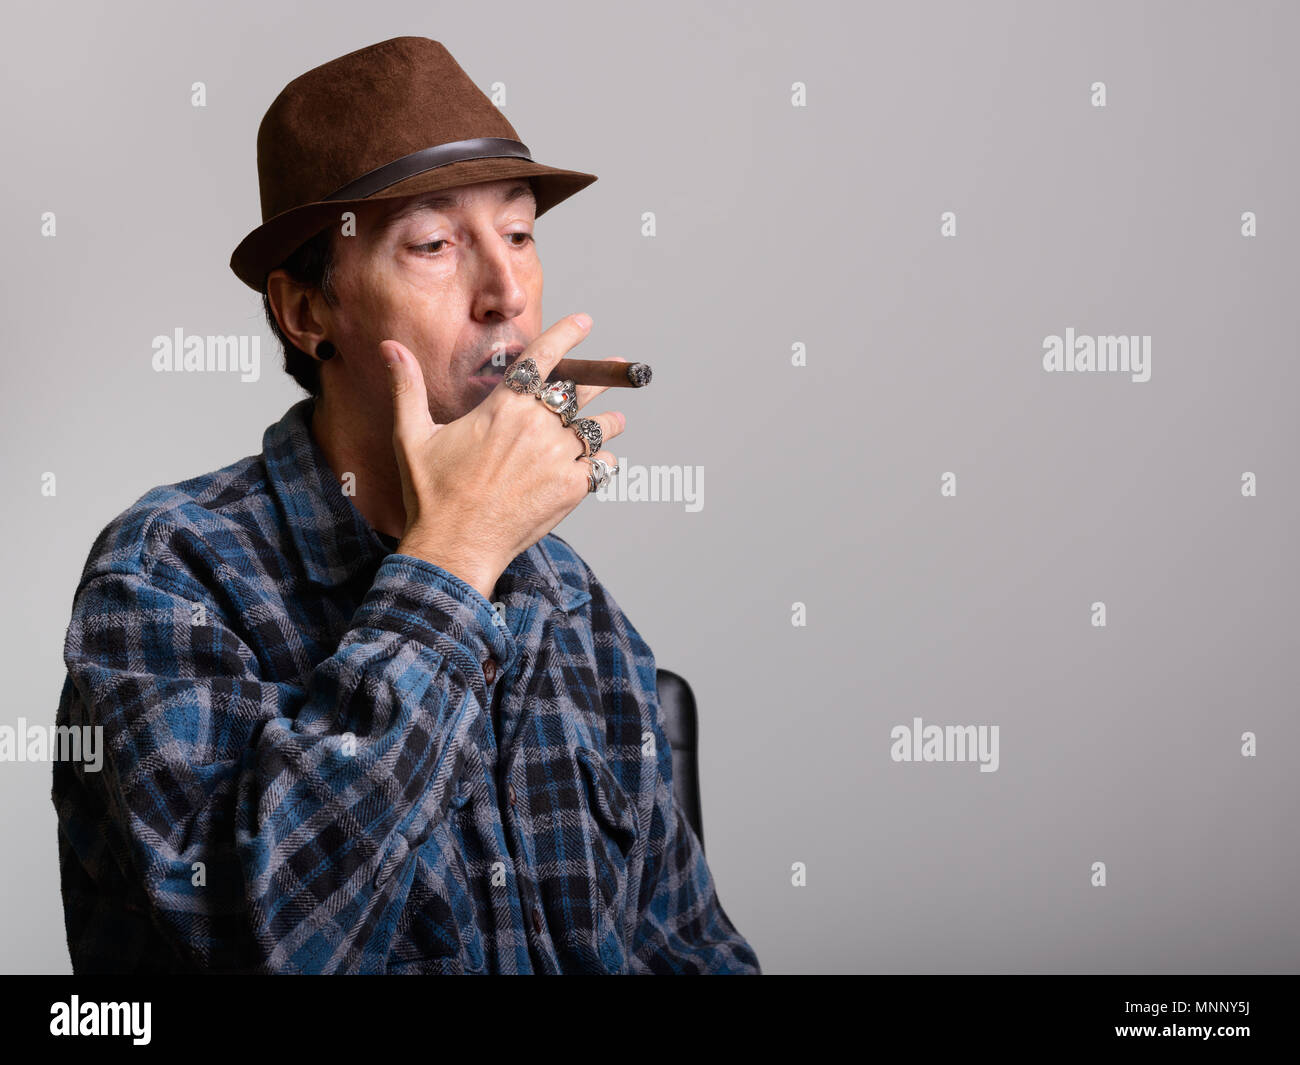 Cigar_smoking Stock Photos & Cigar_smoking Stock Images